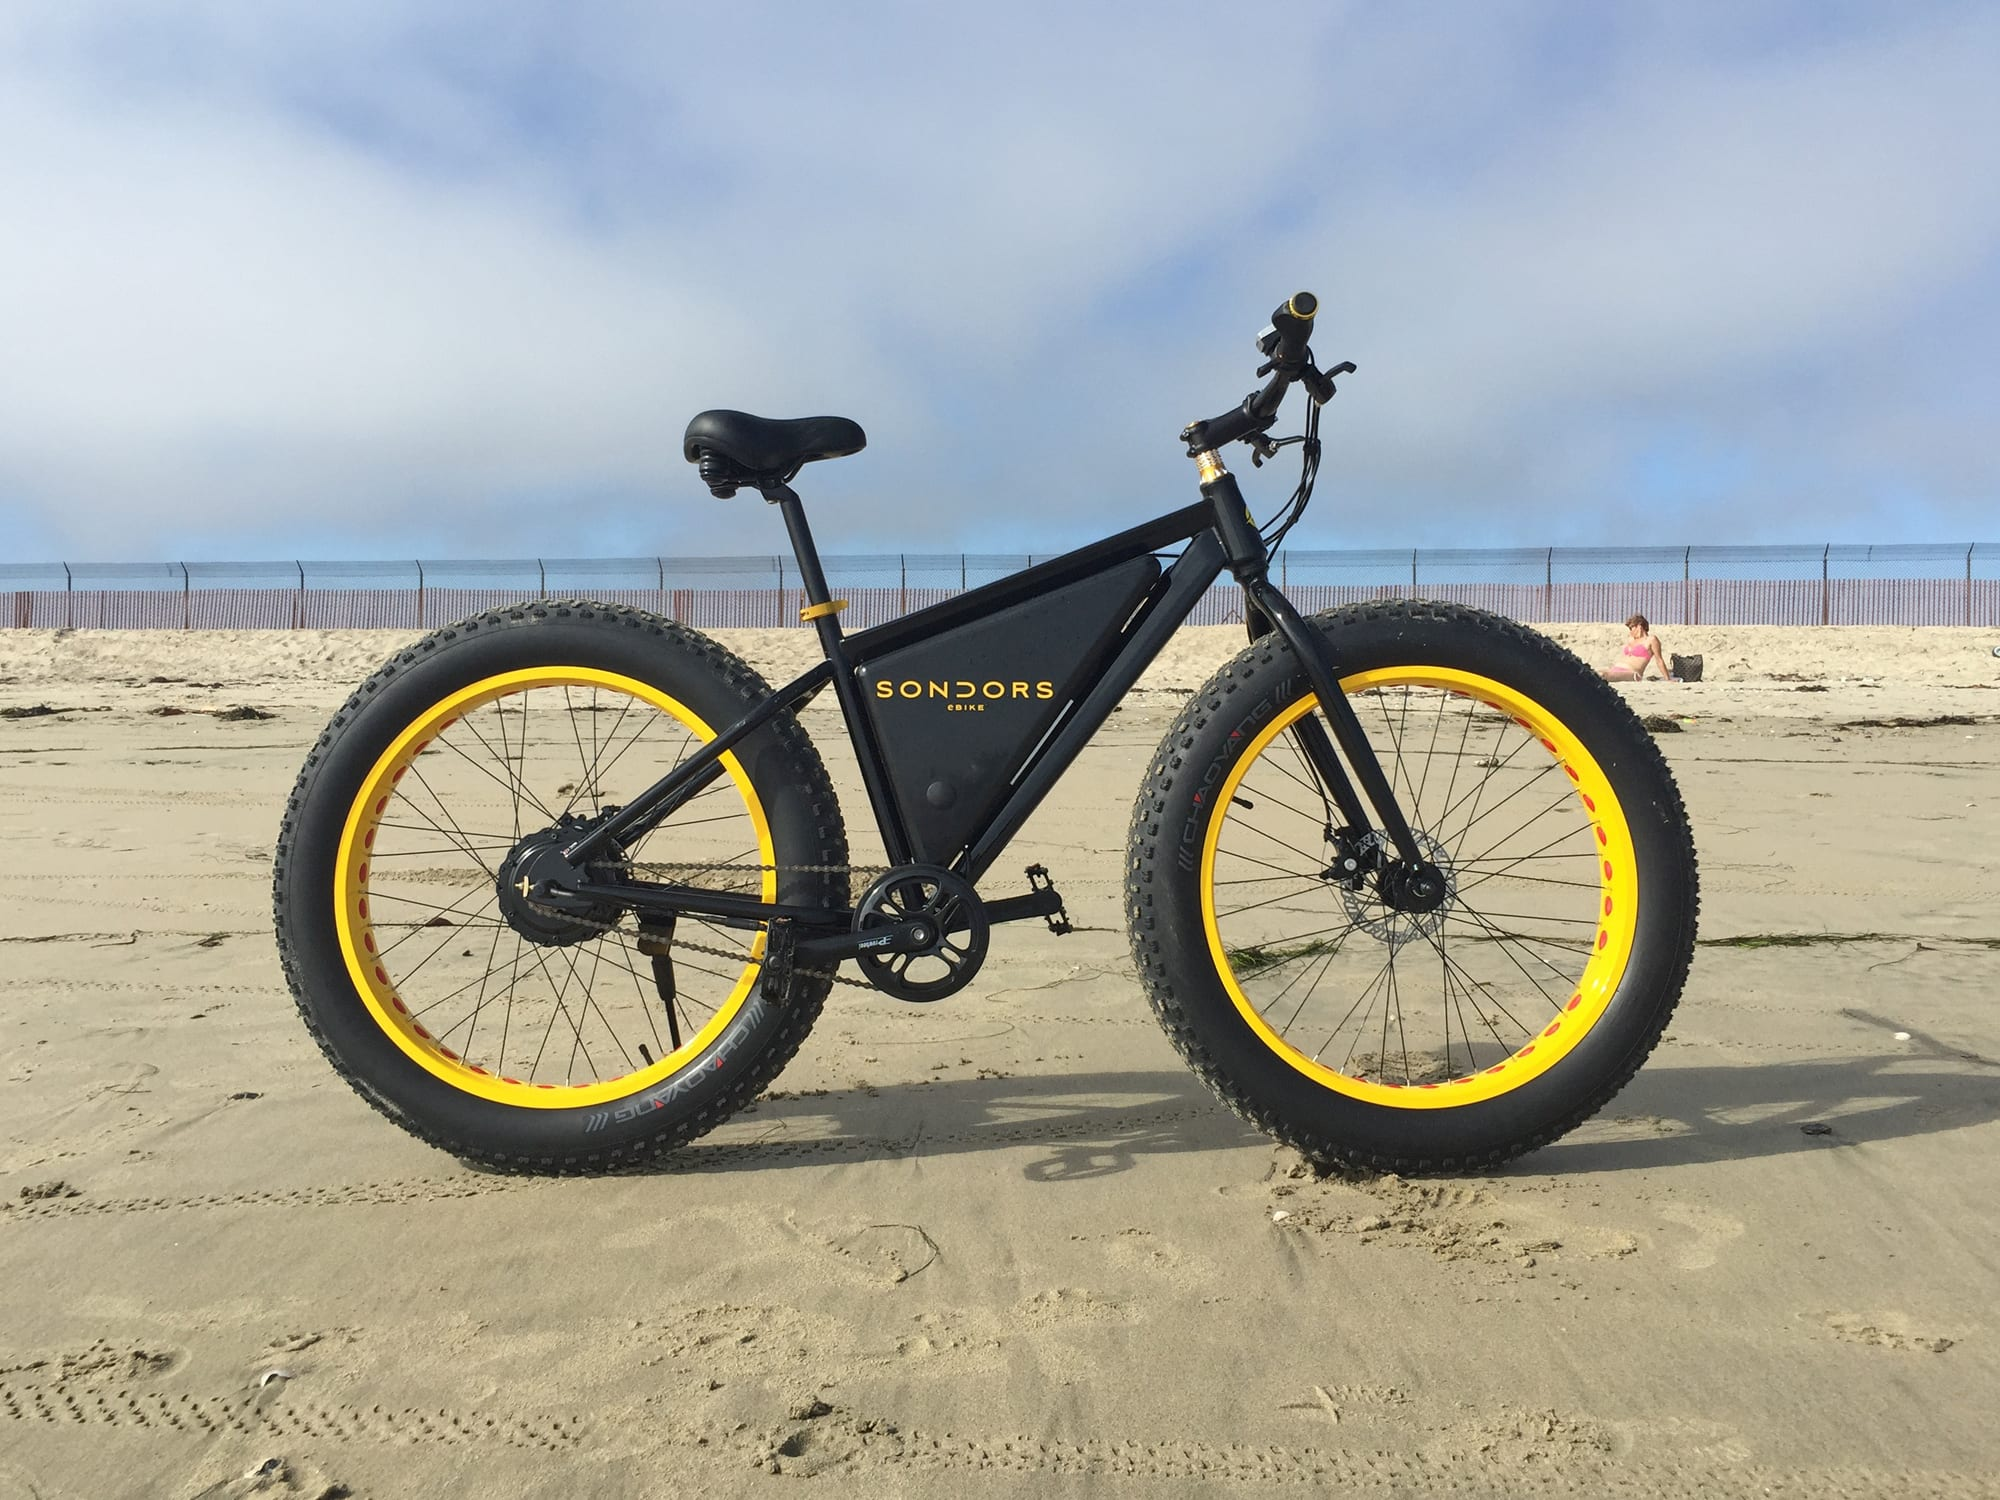 Sondors Ebike Review Prices Specs Videos Photos